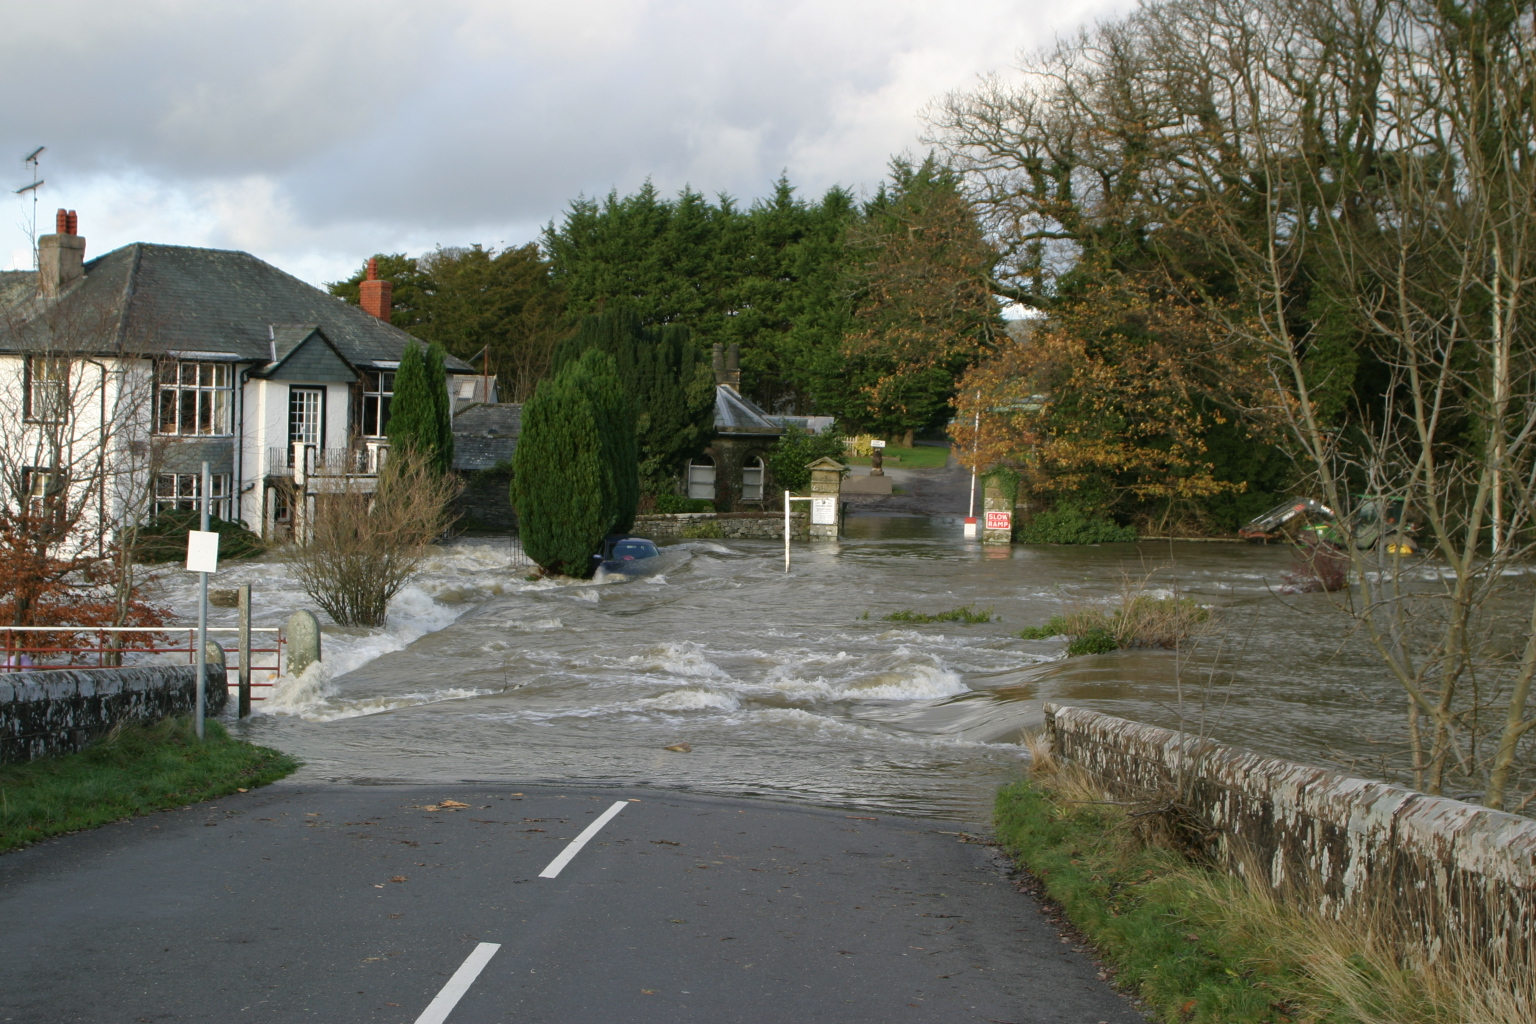 The UK government and EU flood aid money: about as clear as the Cumbria flood waters